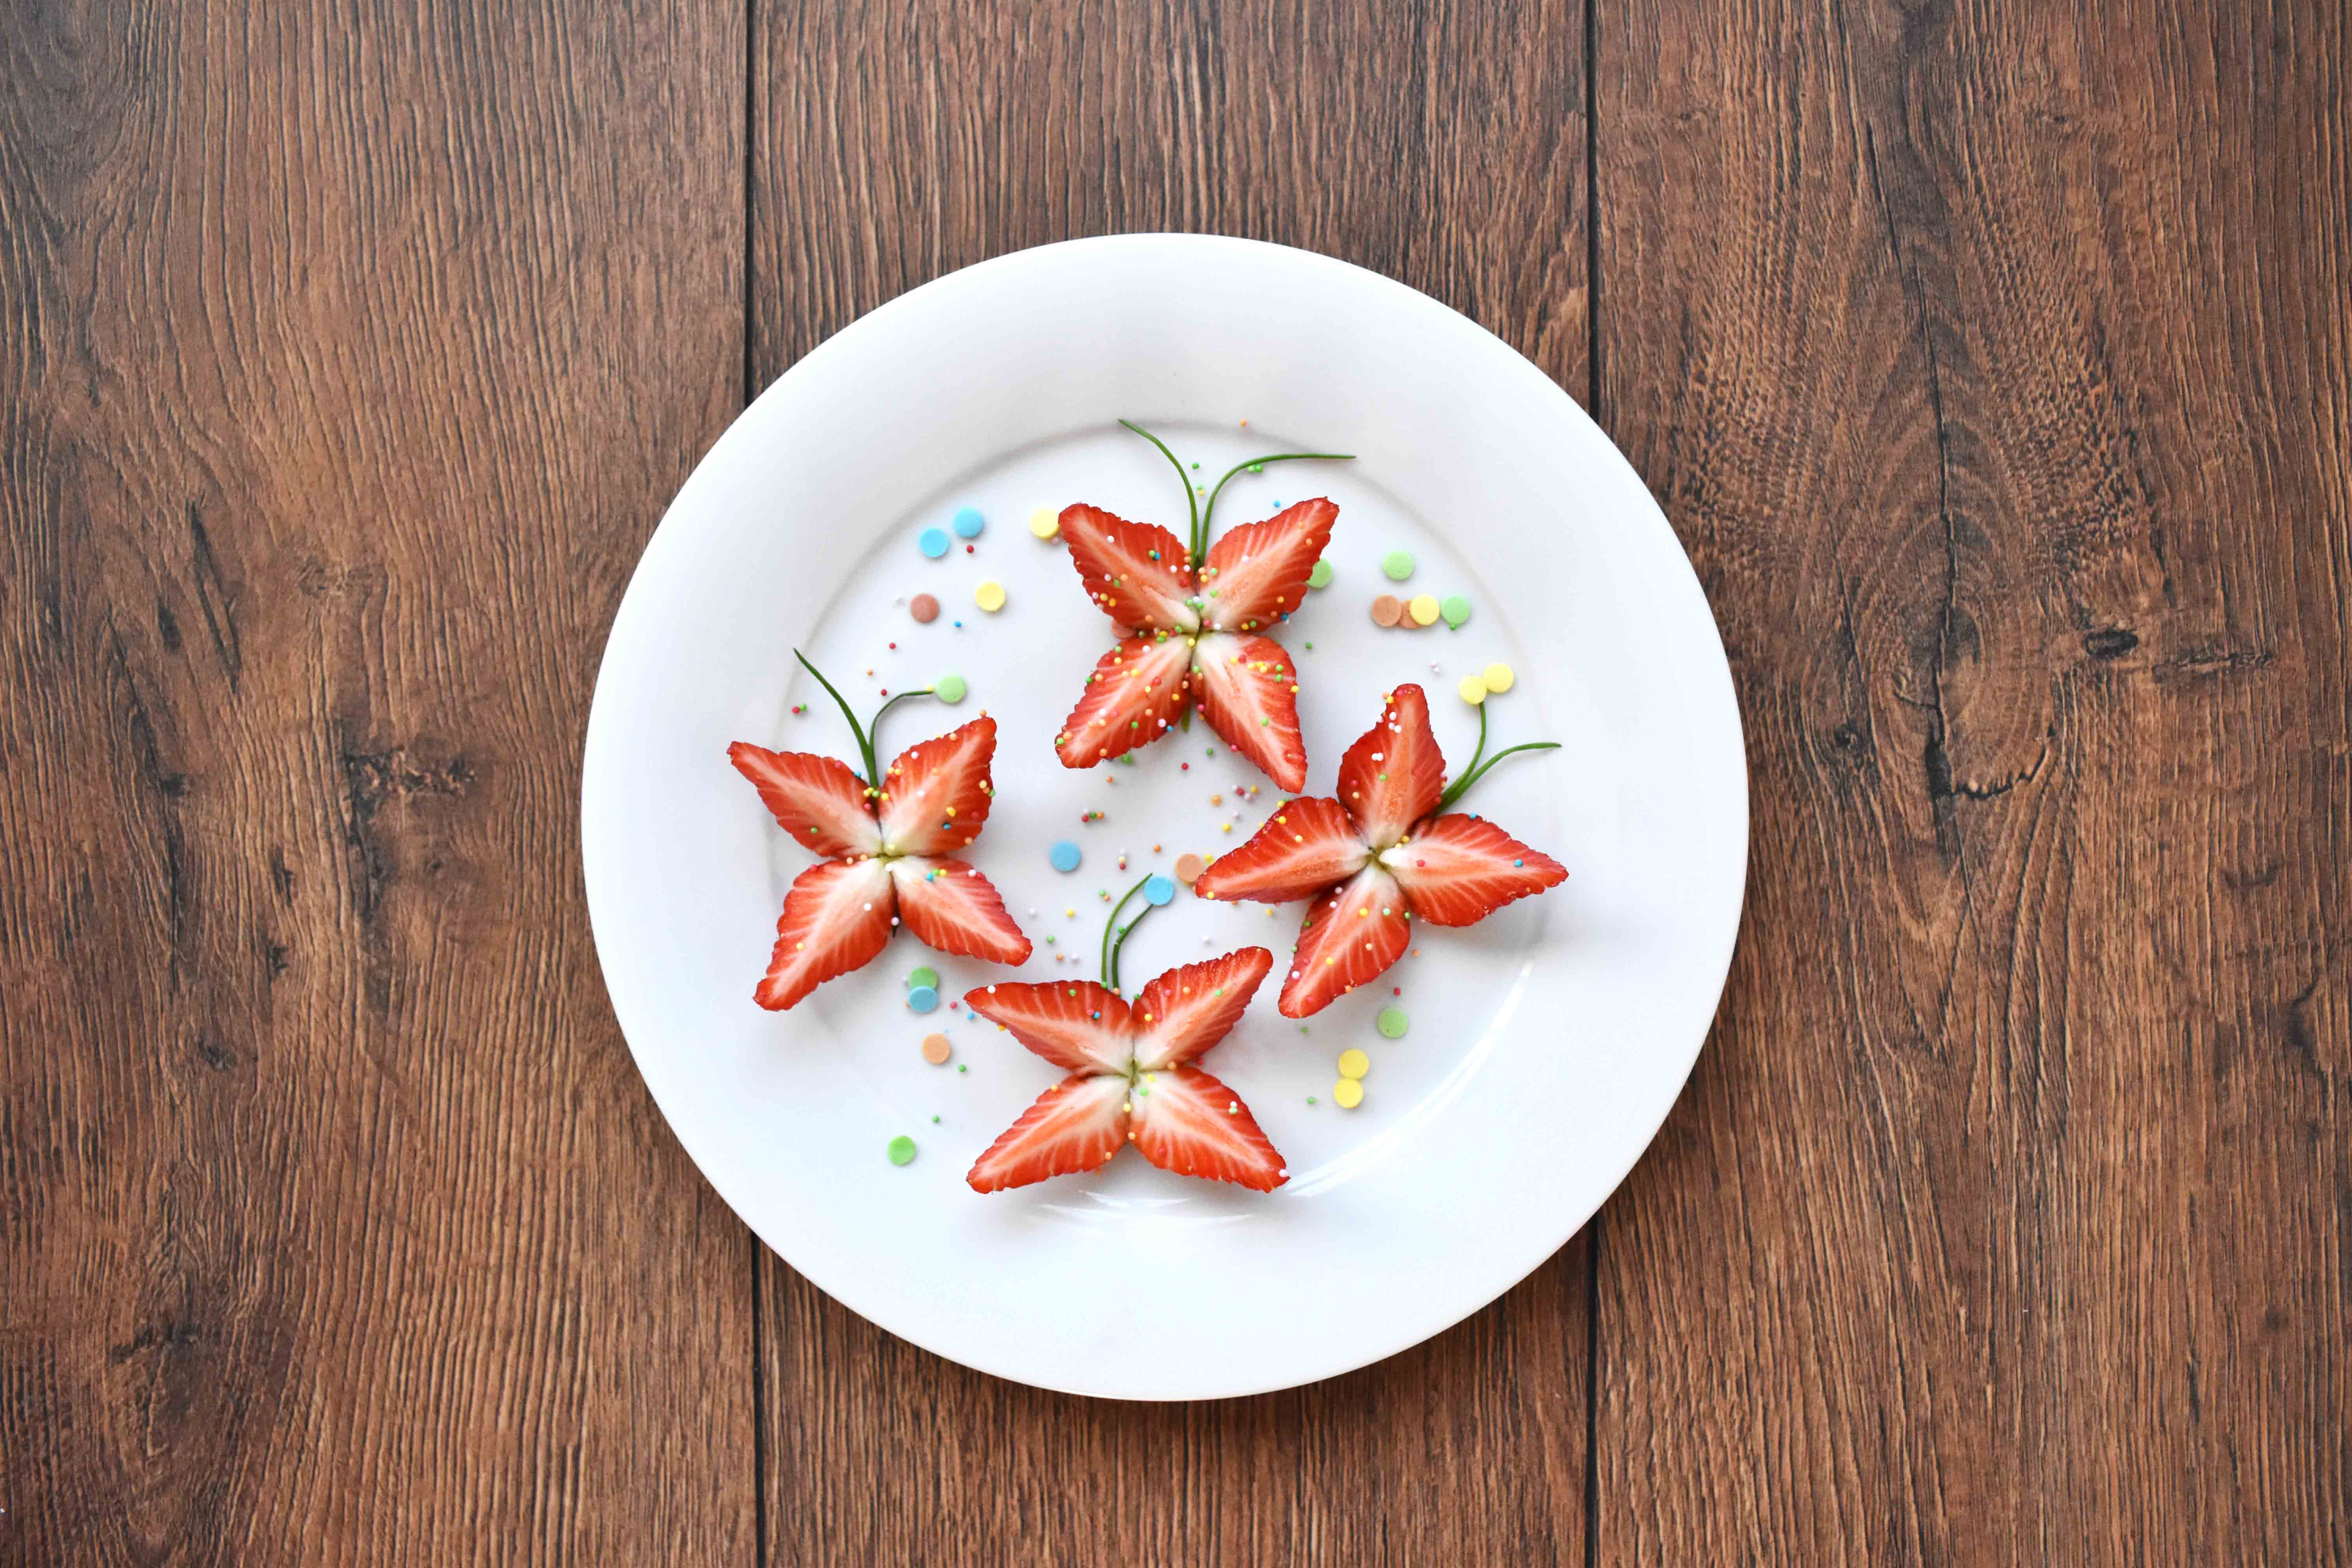 butterflies made out of strawberries